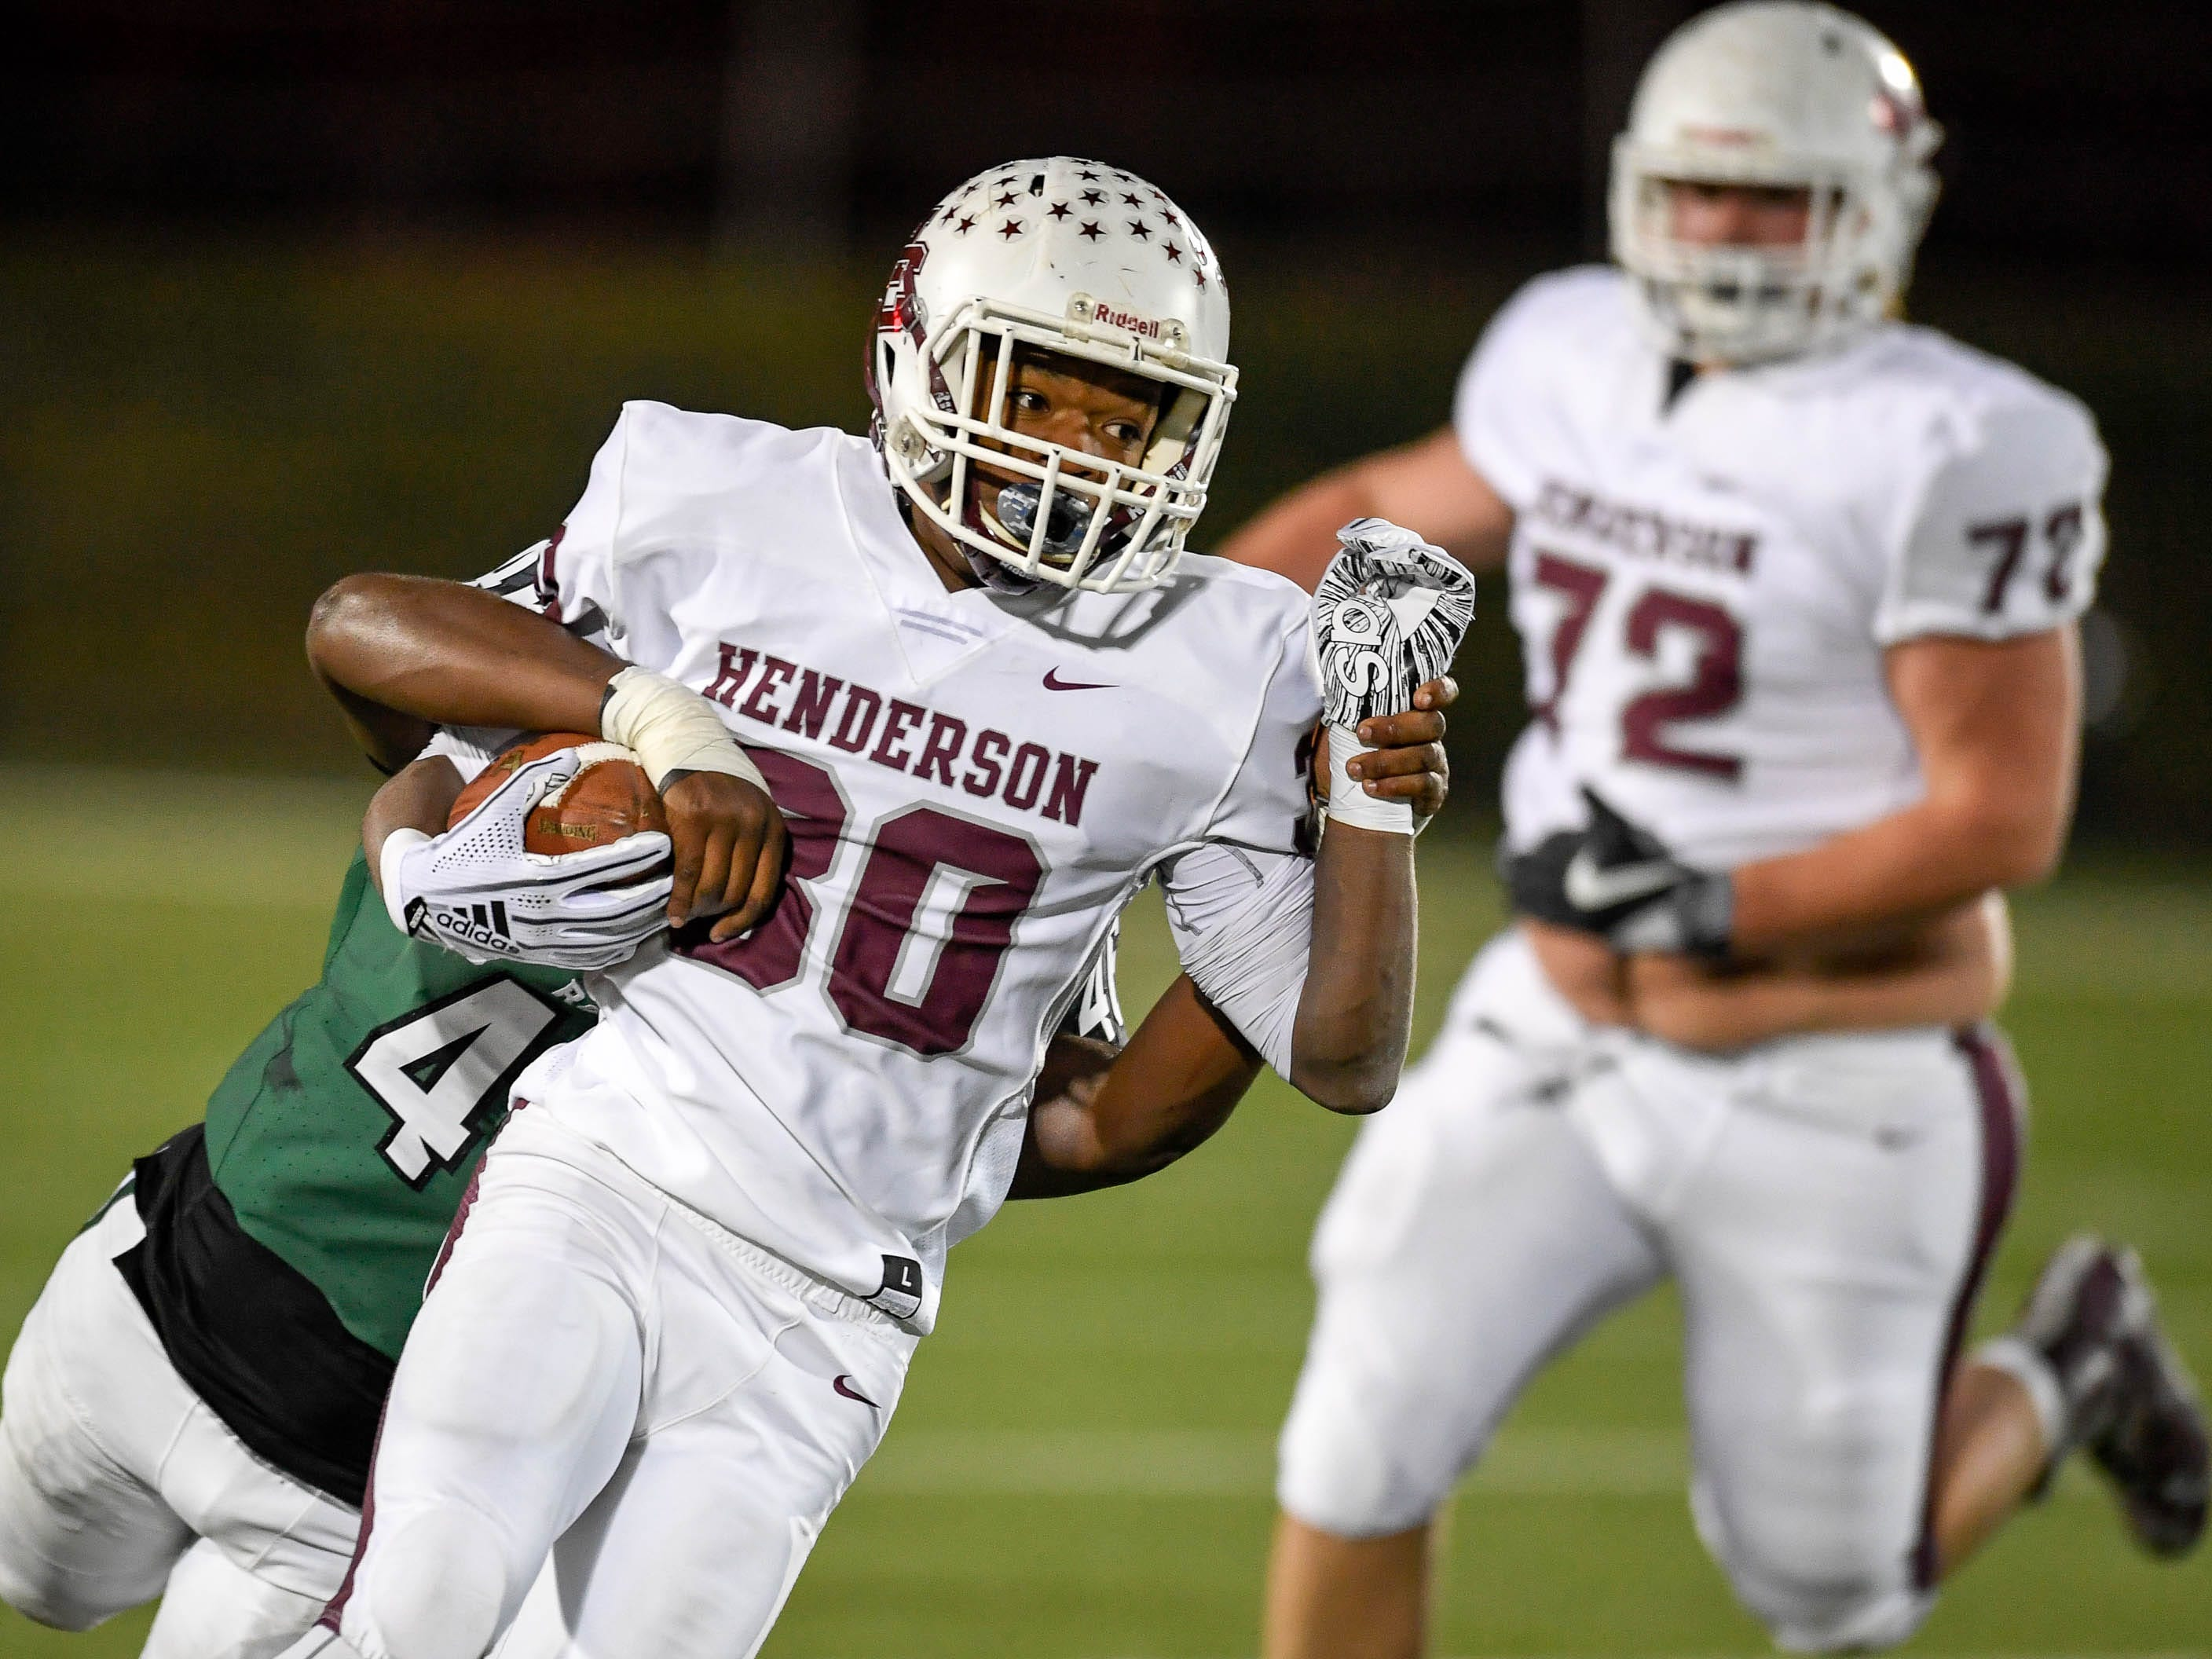 Henderson's Isaiah Easley (30) looks for running room with Trinity's Tyler Roberson (46) hanging on as the Henderson County Colonels play the Trinity Shamrocks in the second round of the Class 6-A football playoffs at Marshall Stadium in Louisville Friday, November 9, 2018.